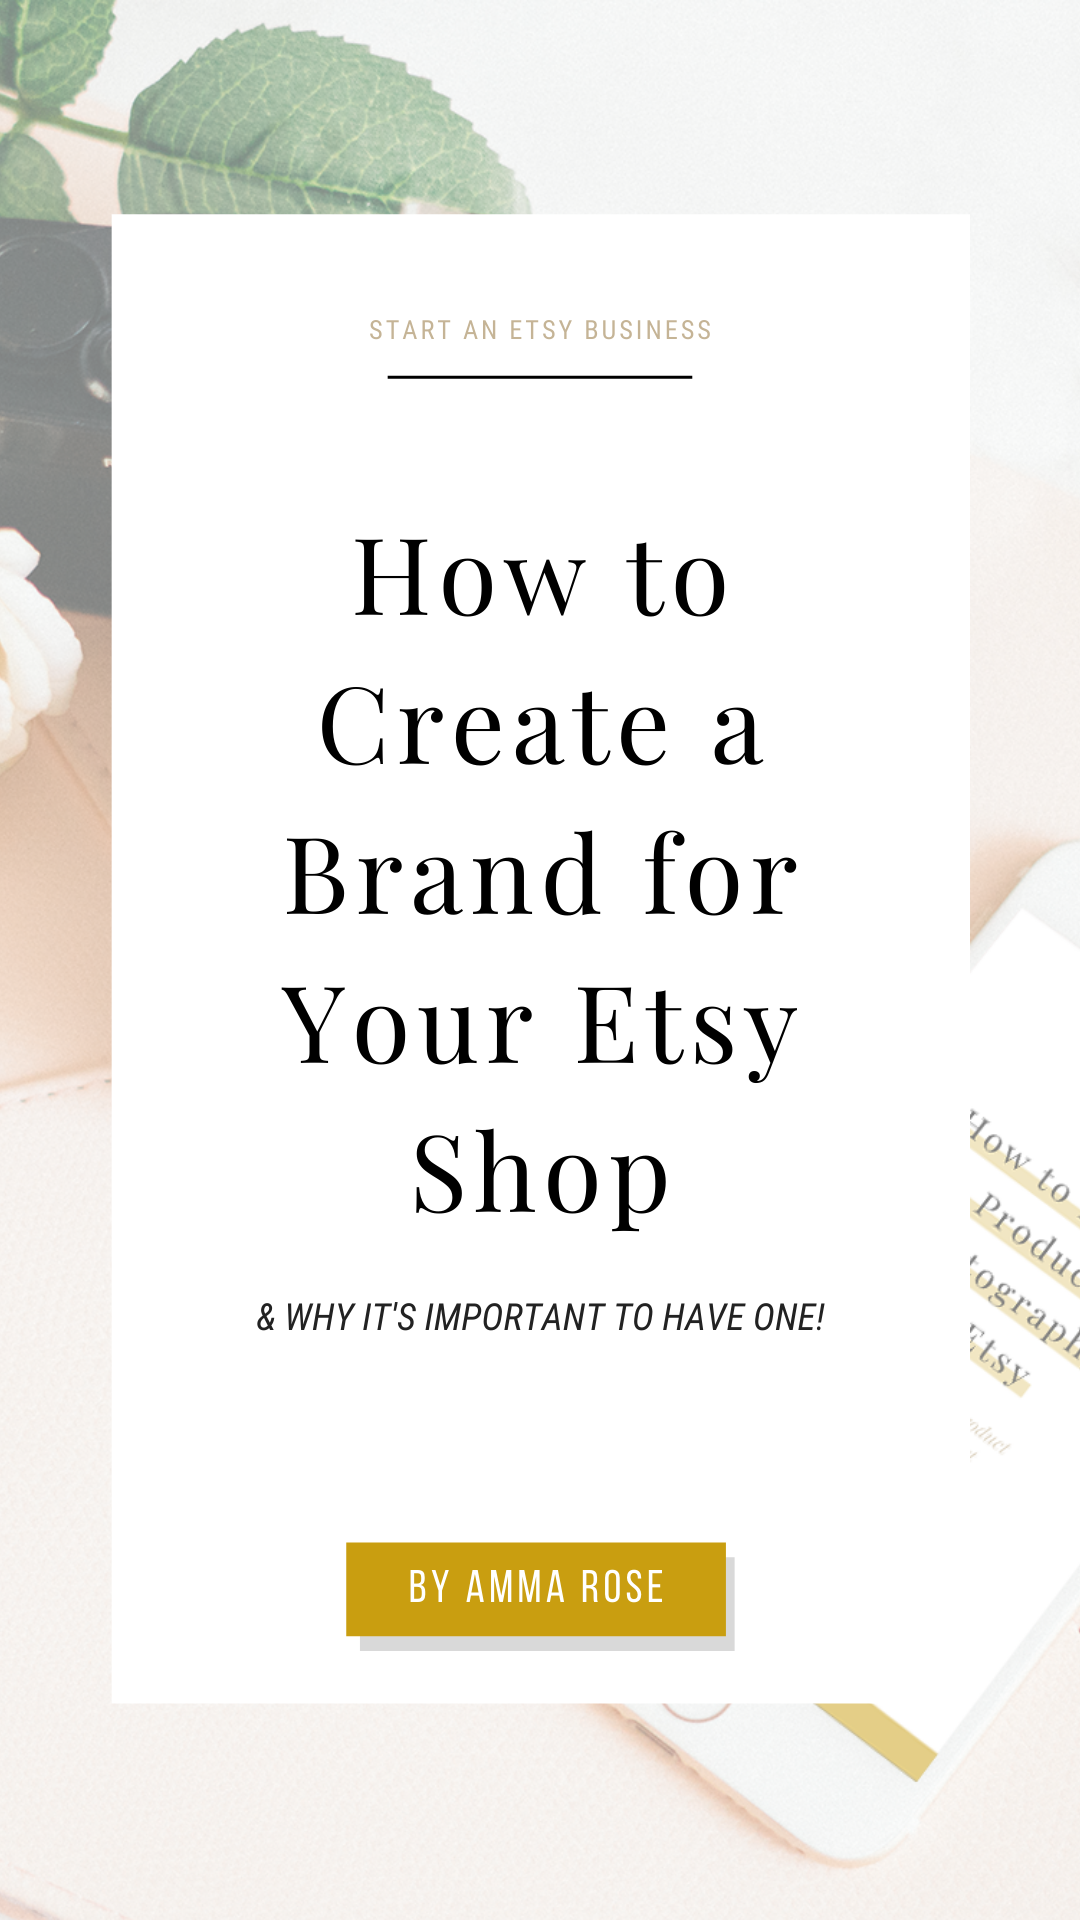 How To Create A Brand For Your Etsy Shop With Images